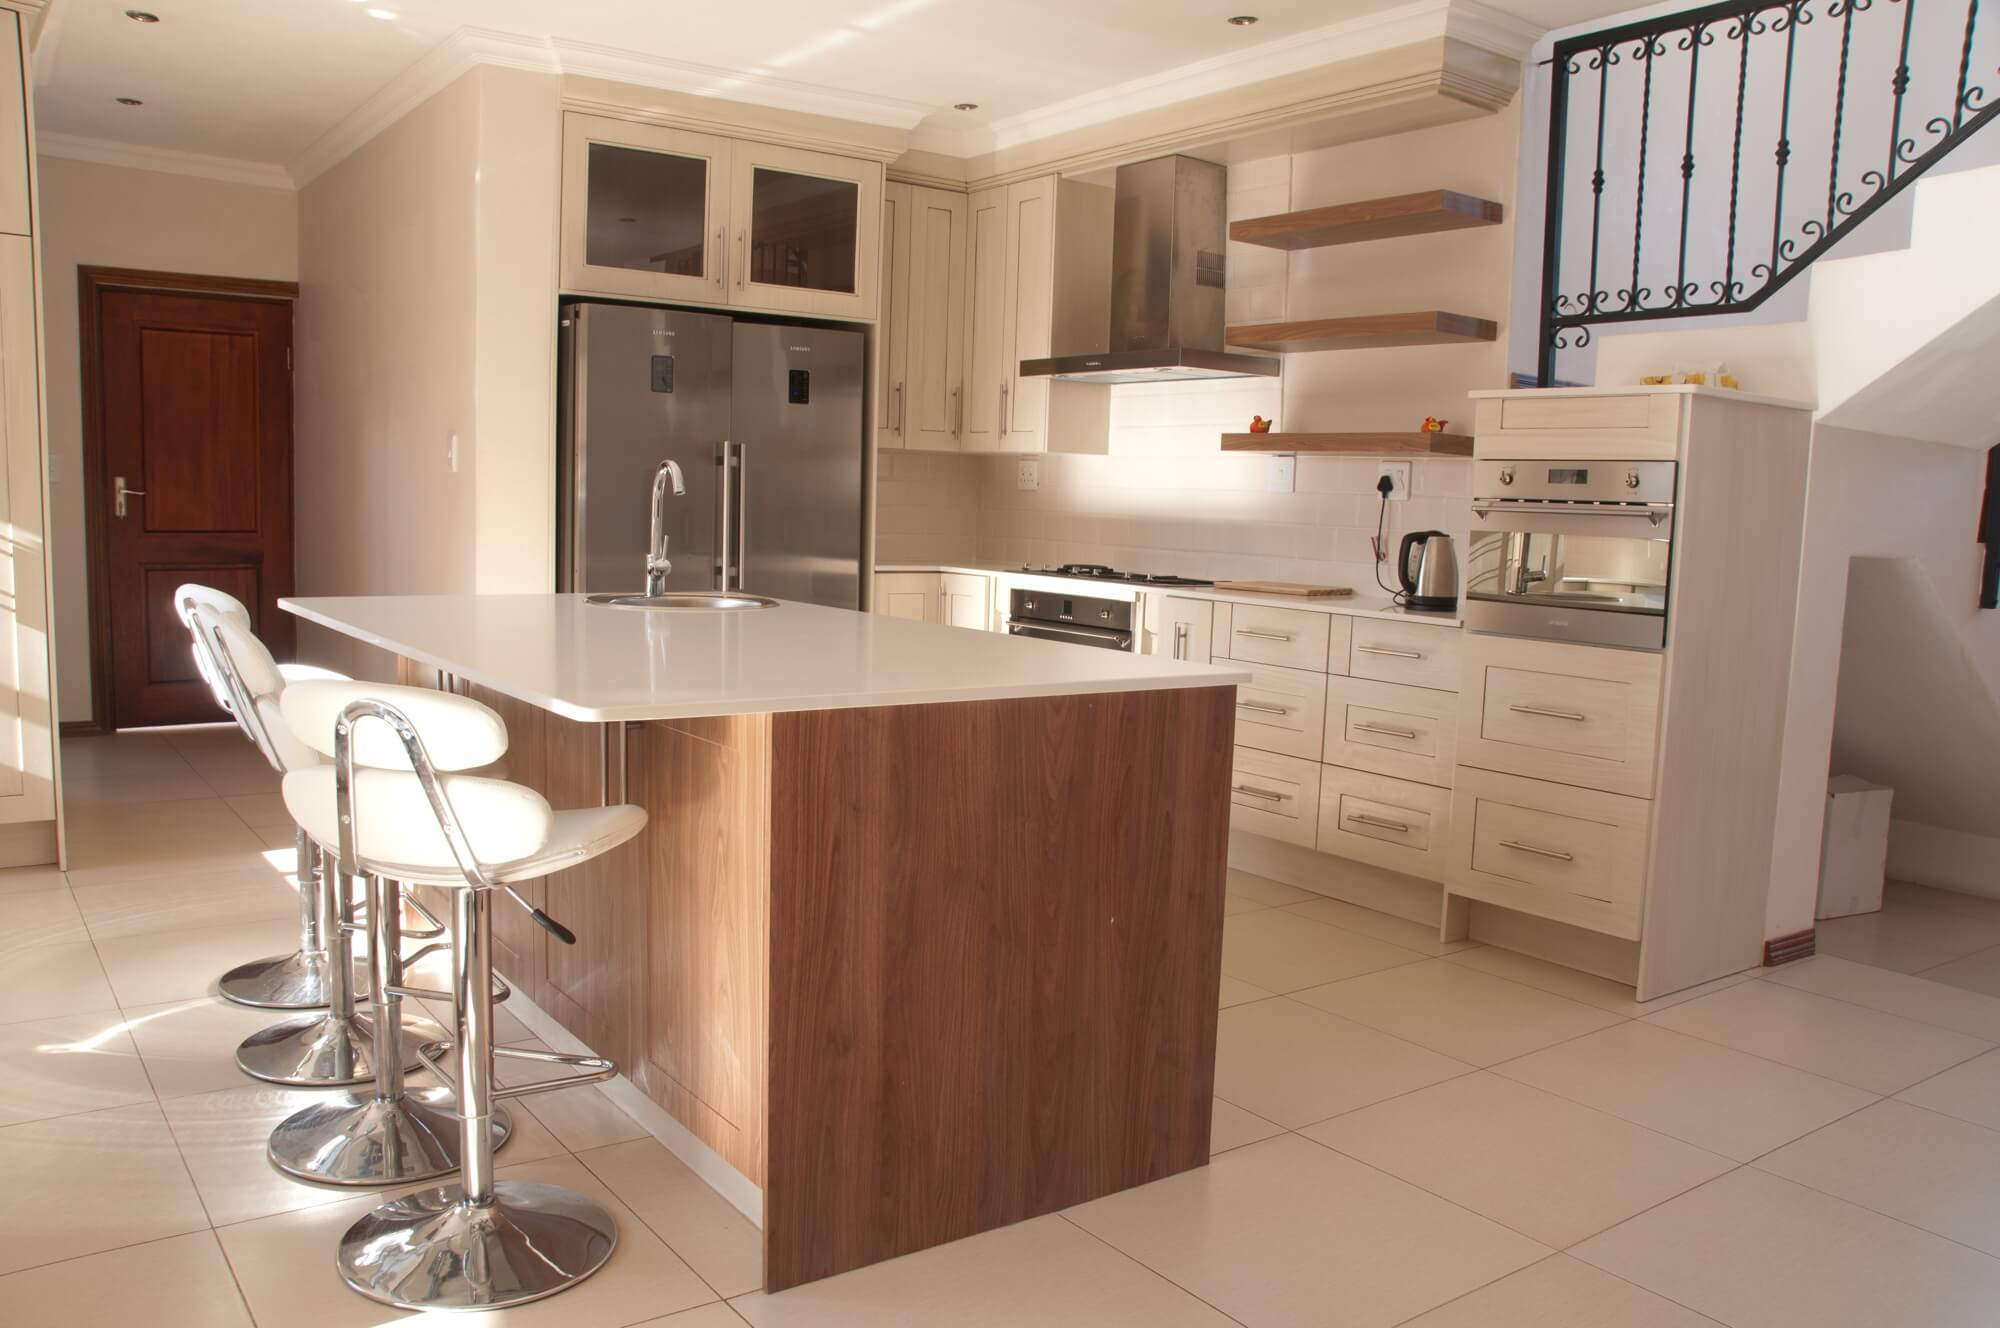 Kitchen design manufacture and installation of kitchens for Kitchen designers in gauteng